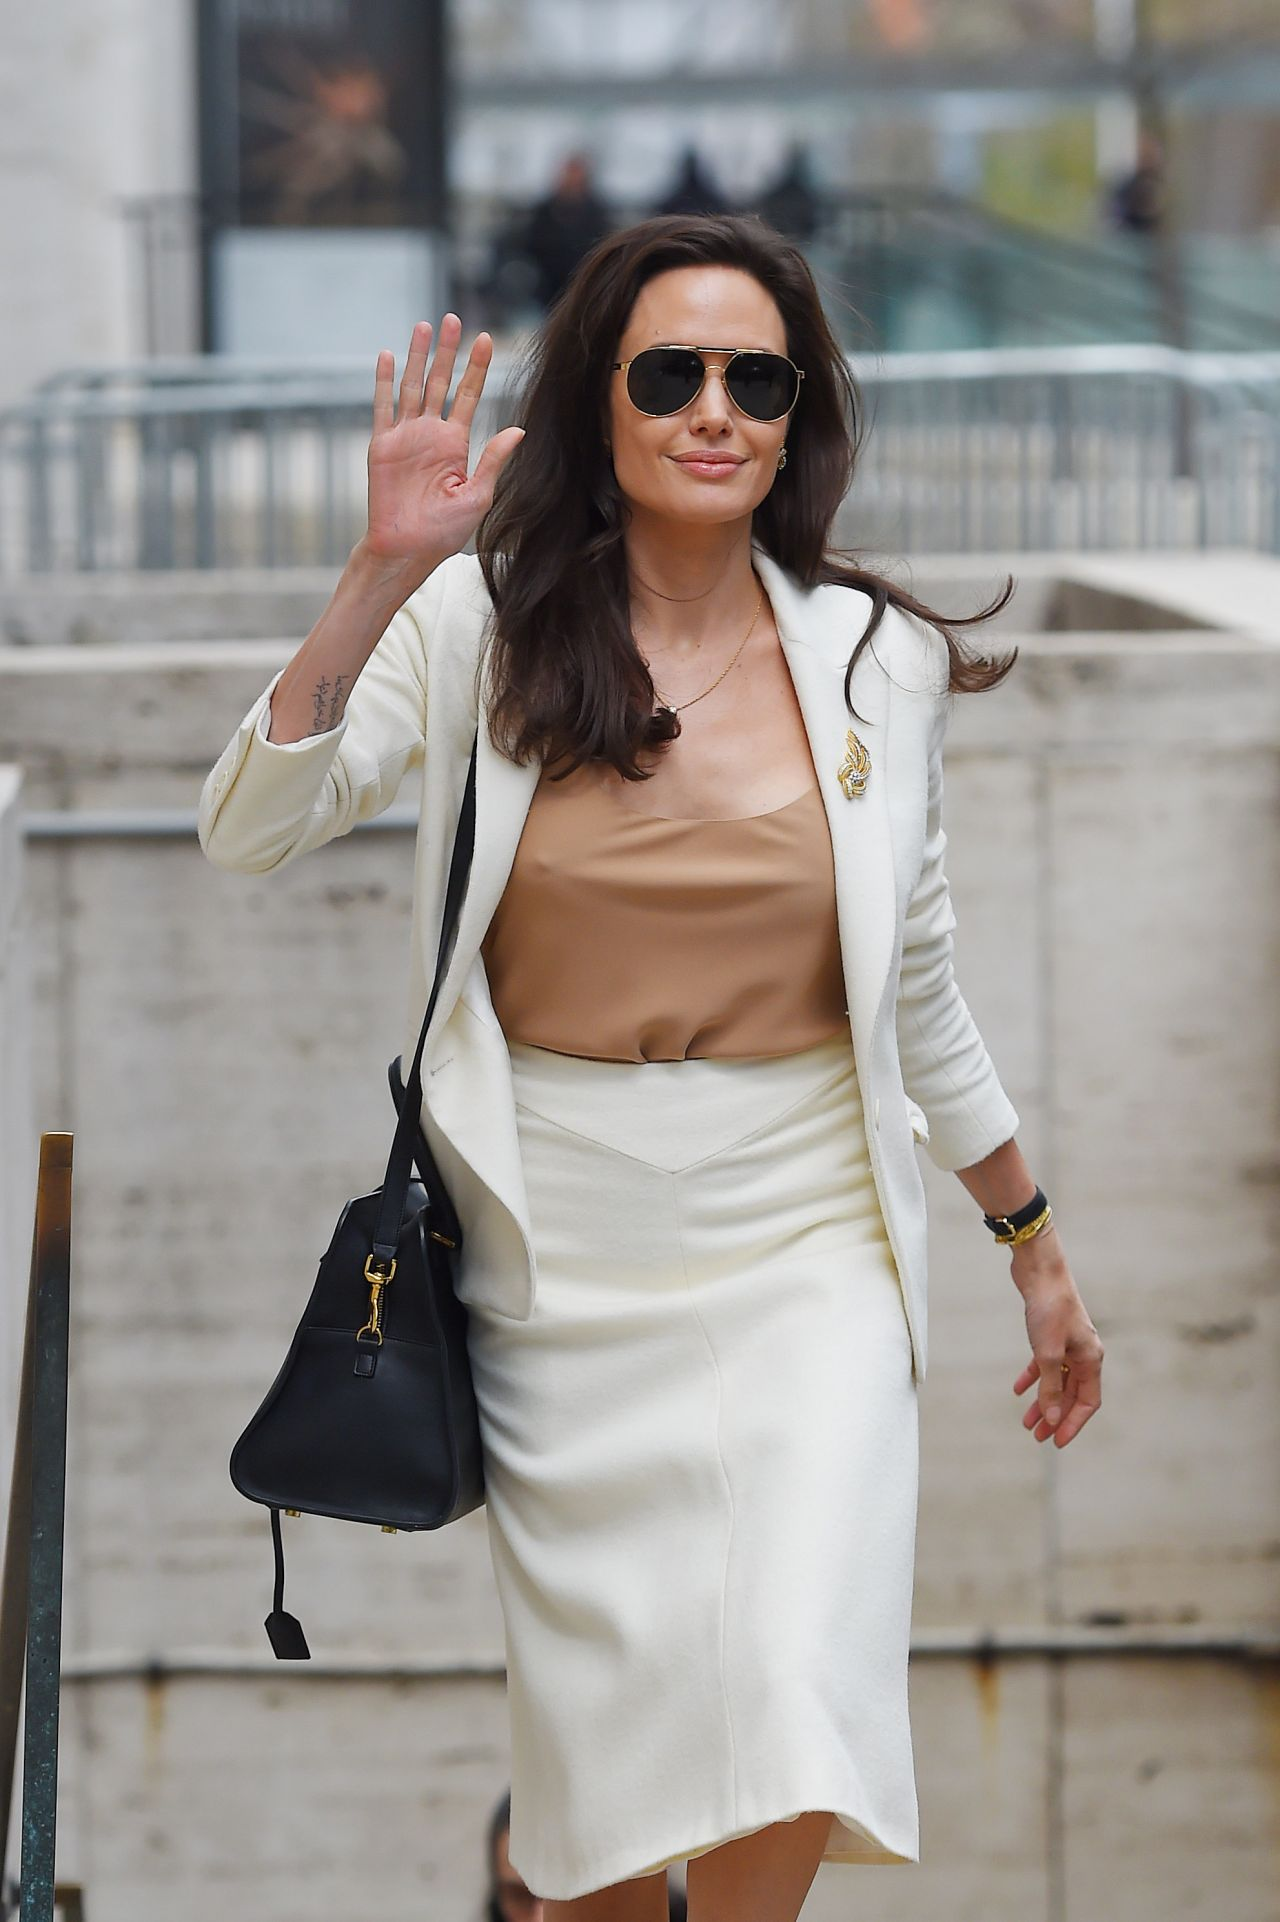 Angelina Jolie Style - Leaving the Lincoln Center in NYC ... анджелина джоли